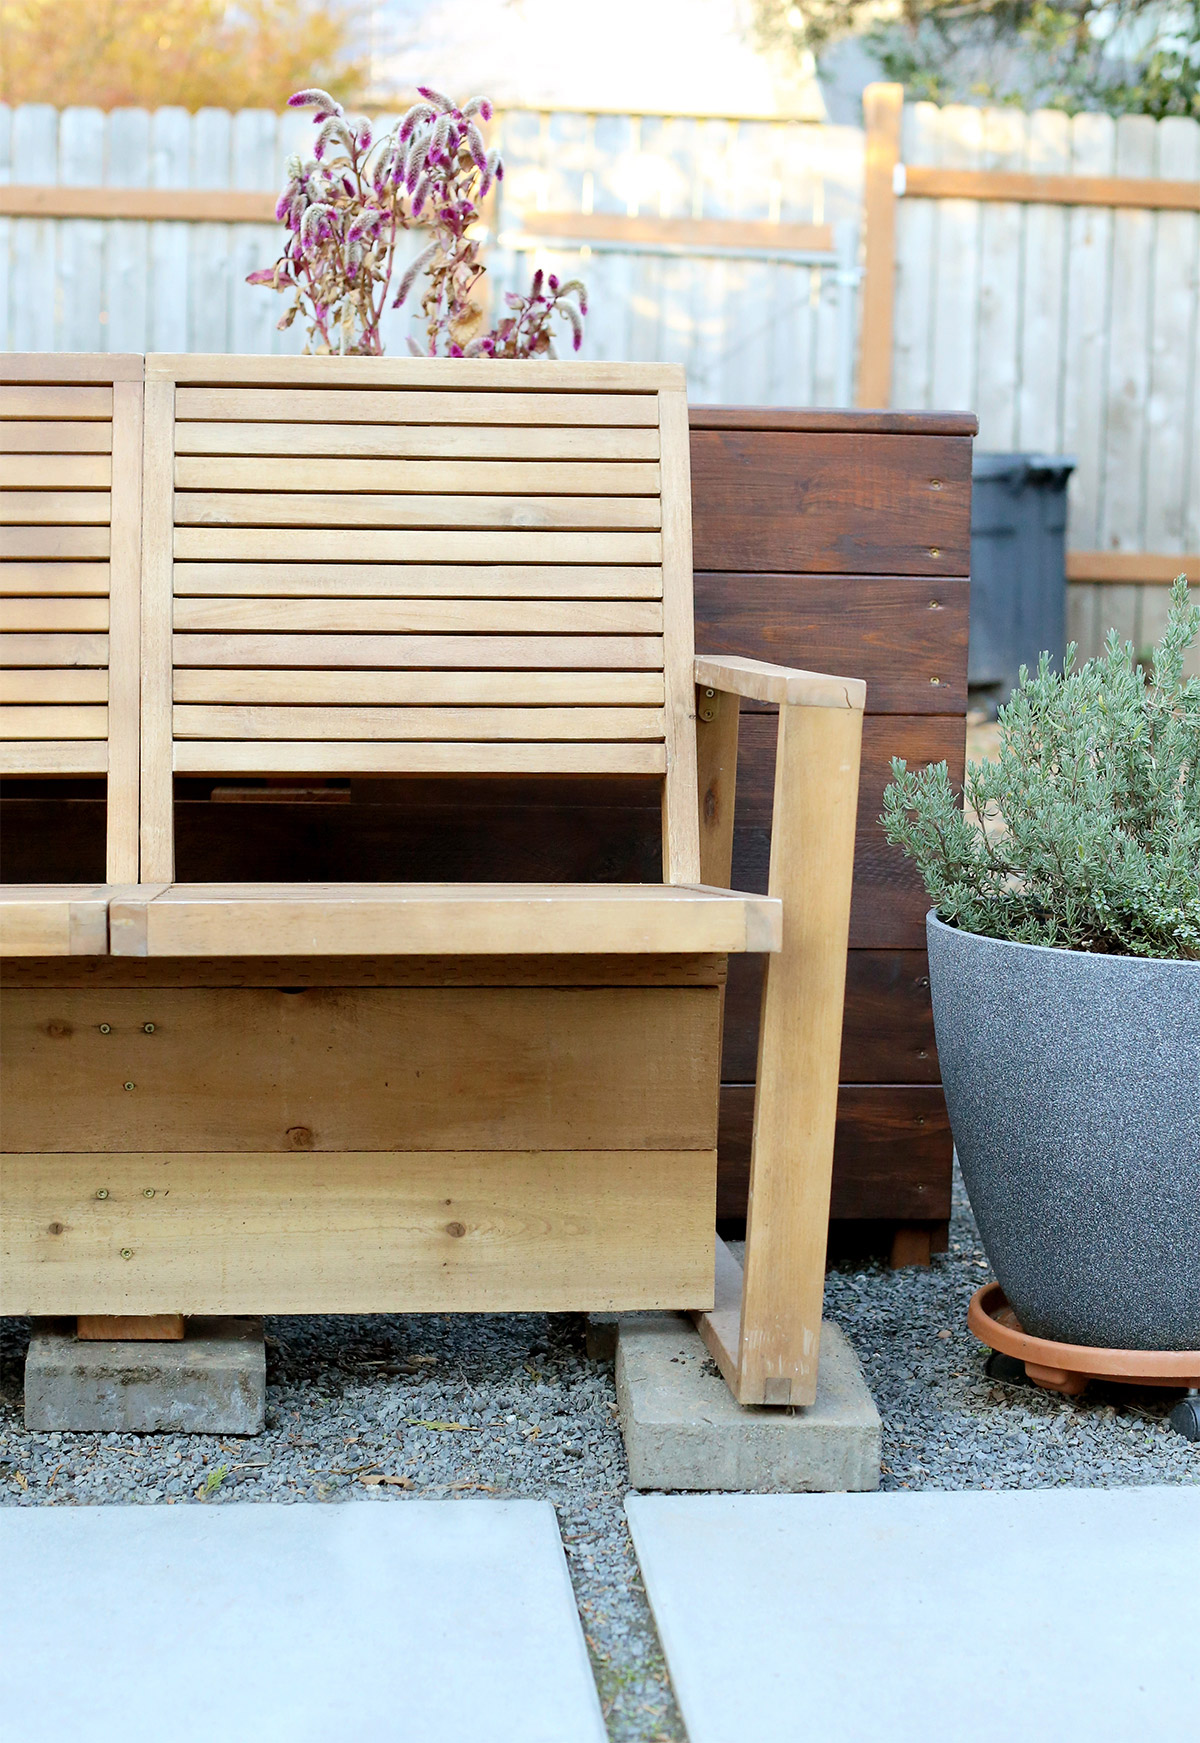 6 Quick Tips to Protect Outdoor Furniture in the Winter